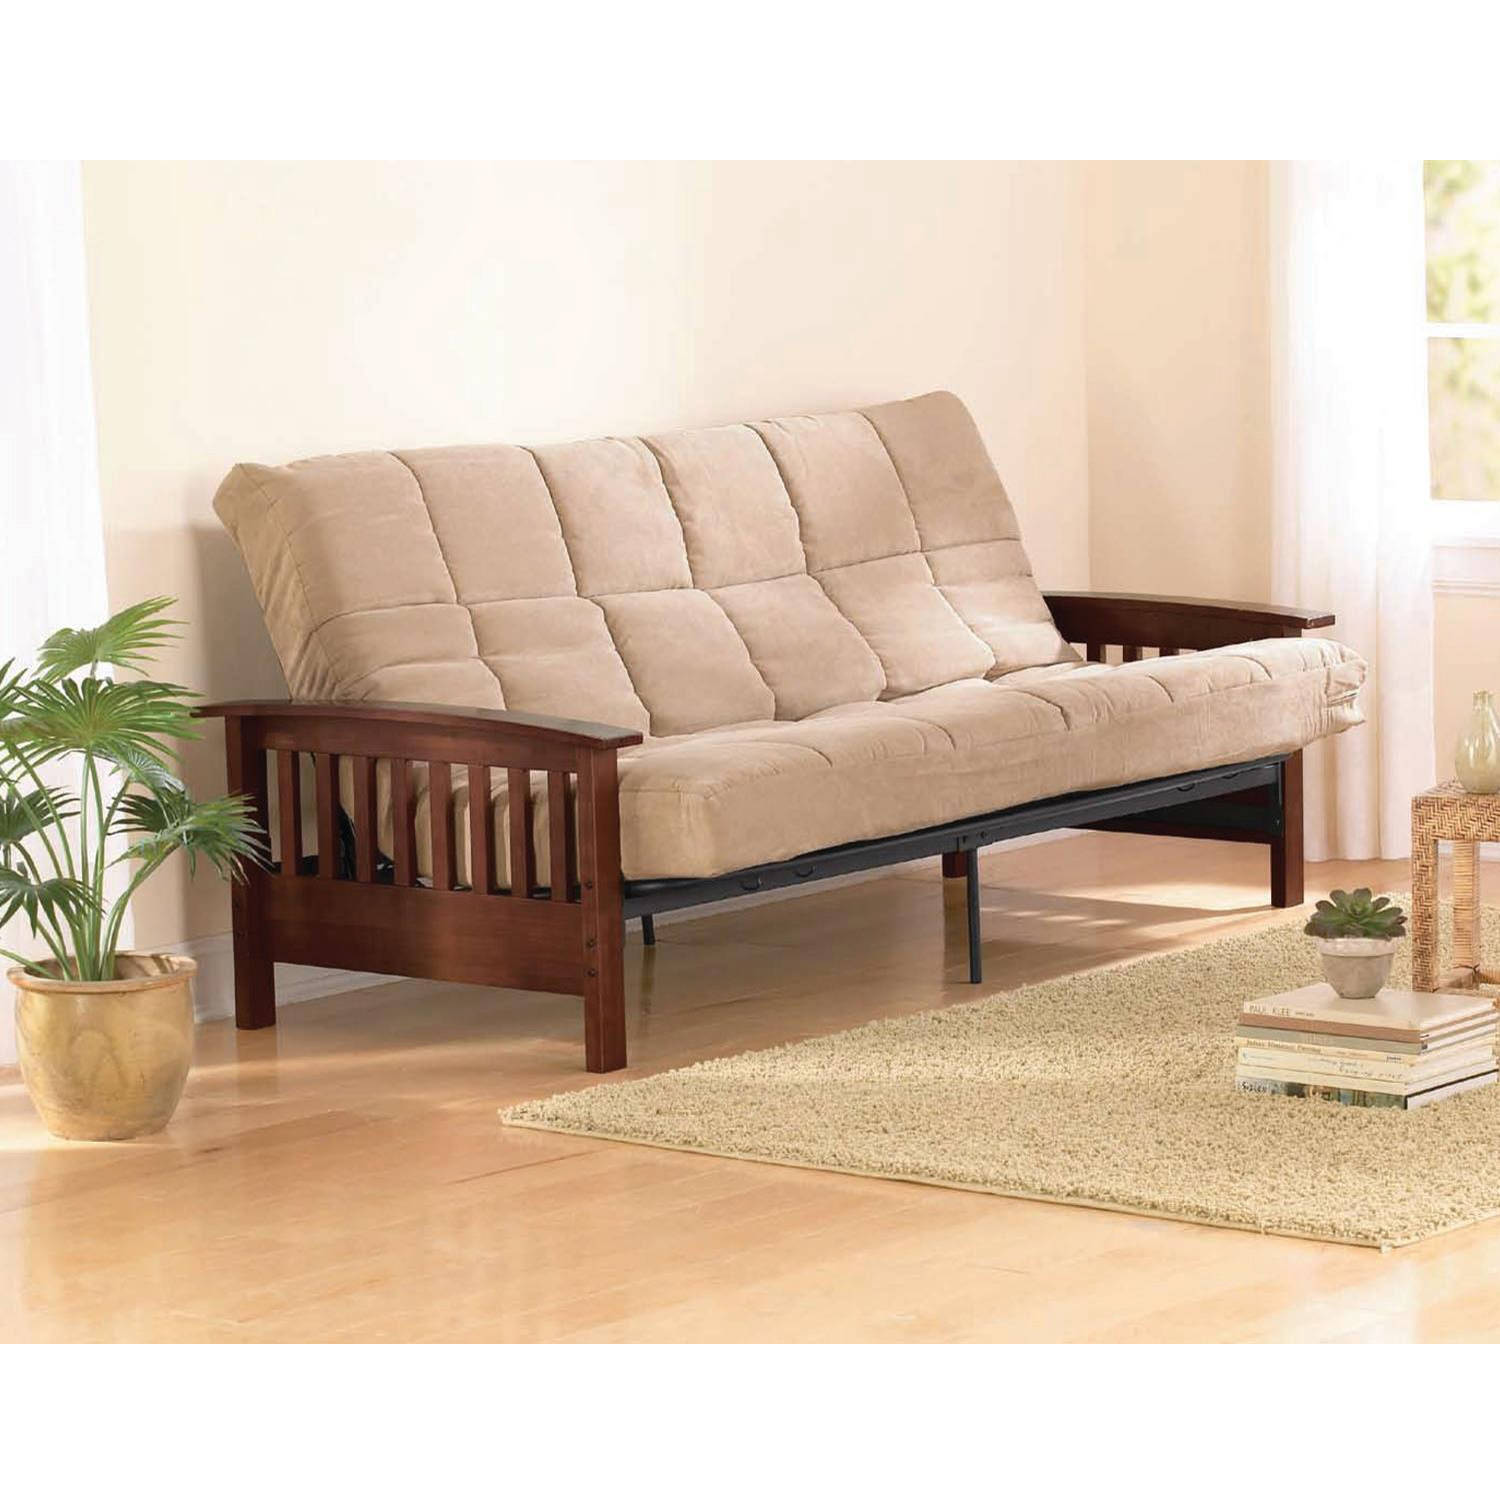 Baja Convert A Couch And Sofa Bed Manufacturer Scifihitscom